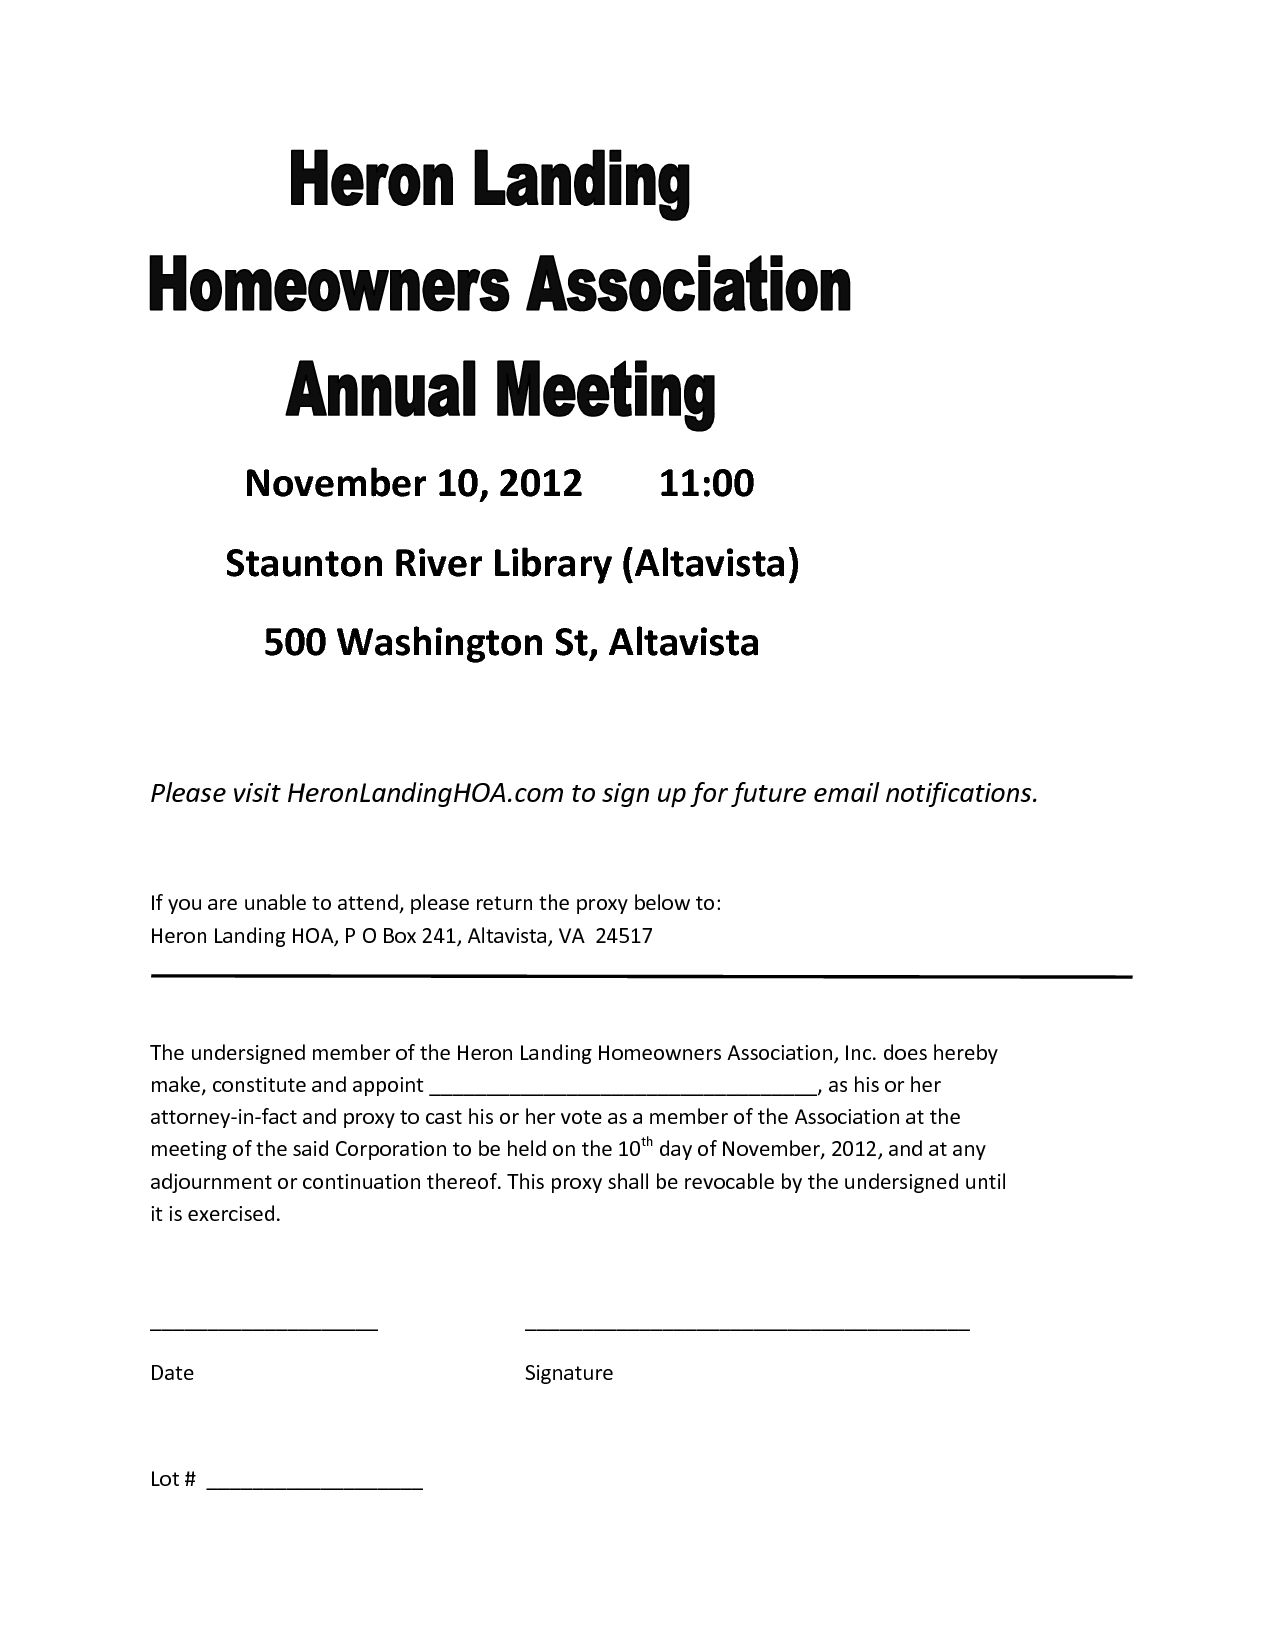 Homeowners association letters samples free professional resume homeowners association letters homeowners association proxy form with sample hoa proxy form late rent notice letter for rent payment form with sample letter altavistaventures Gallery